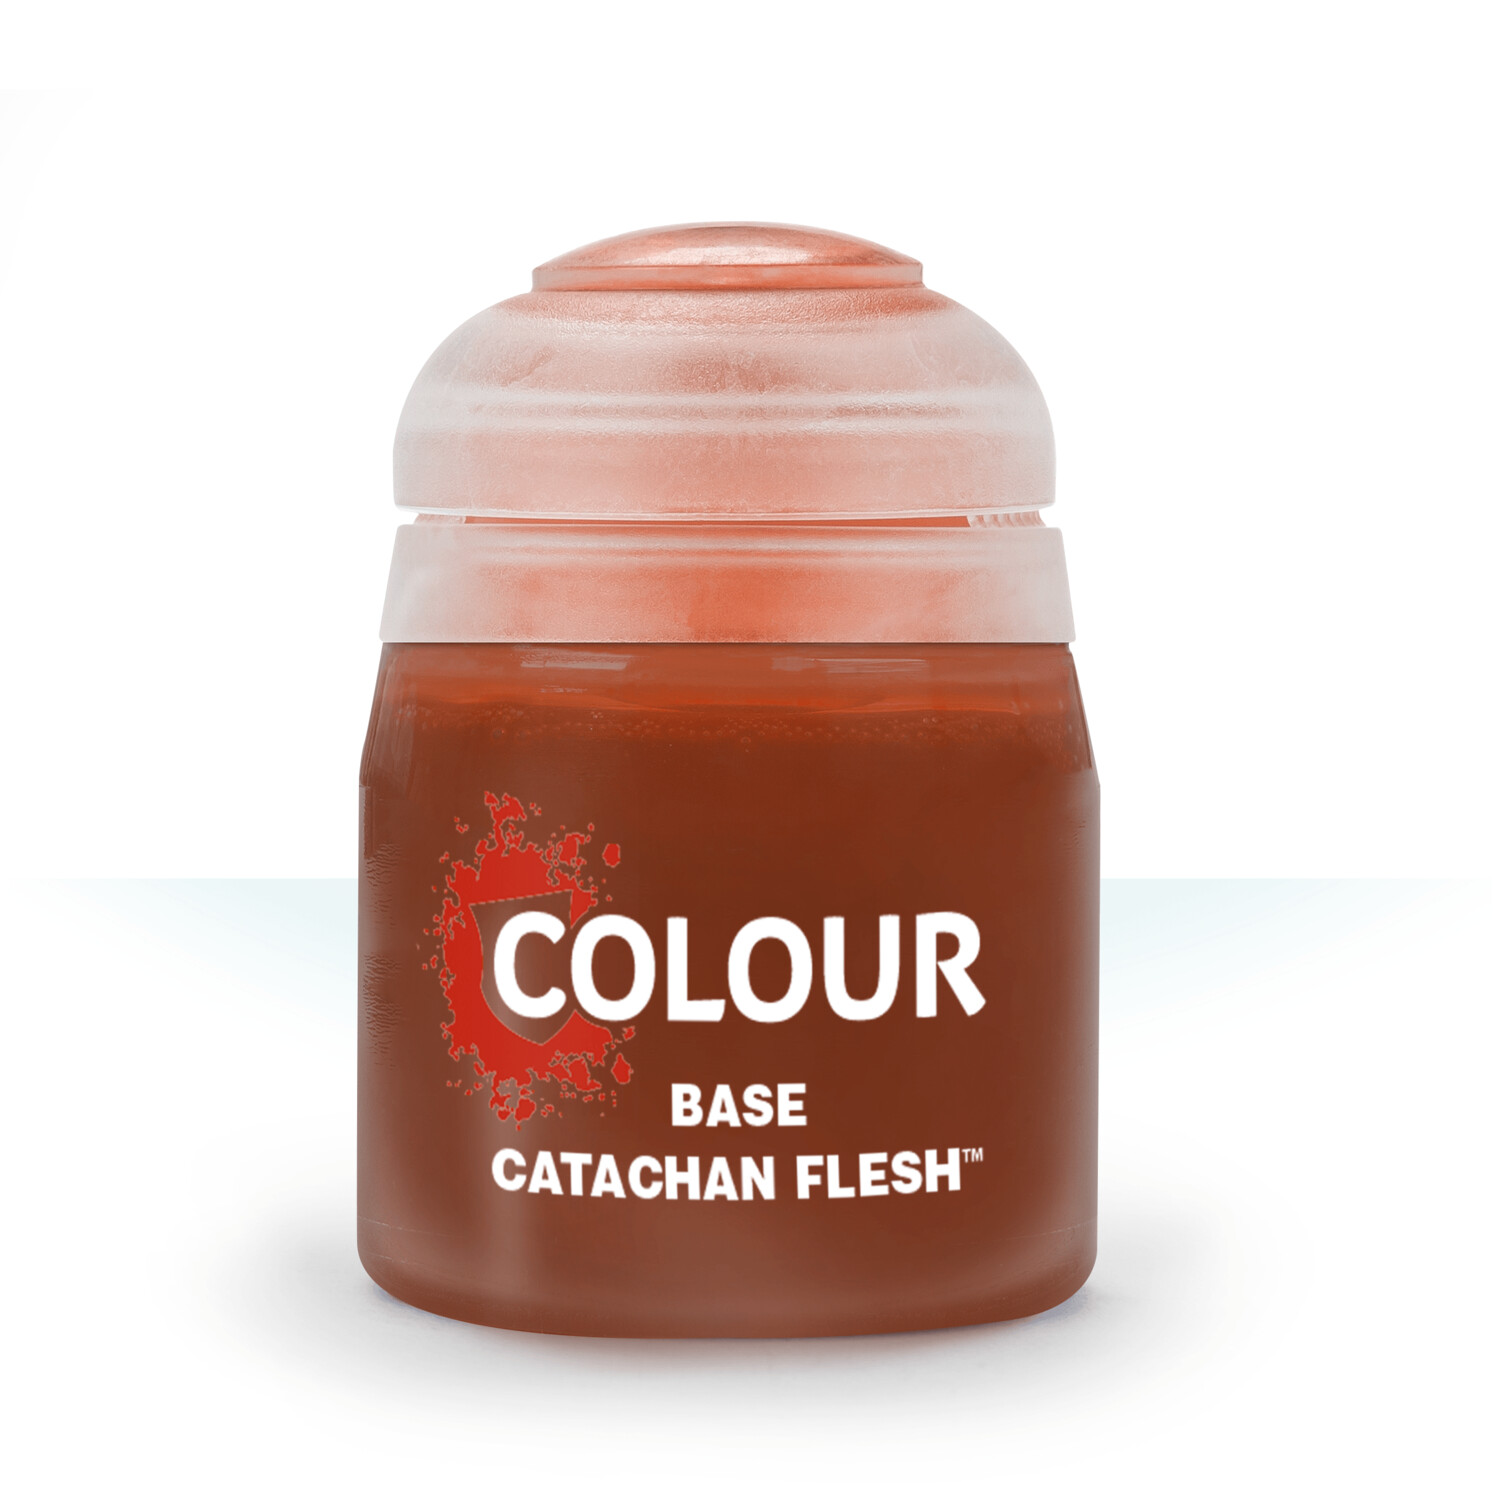 B Catachan Flesh